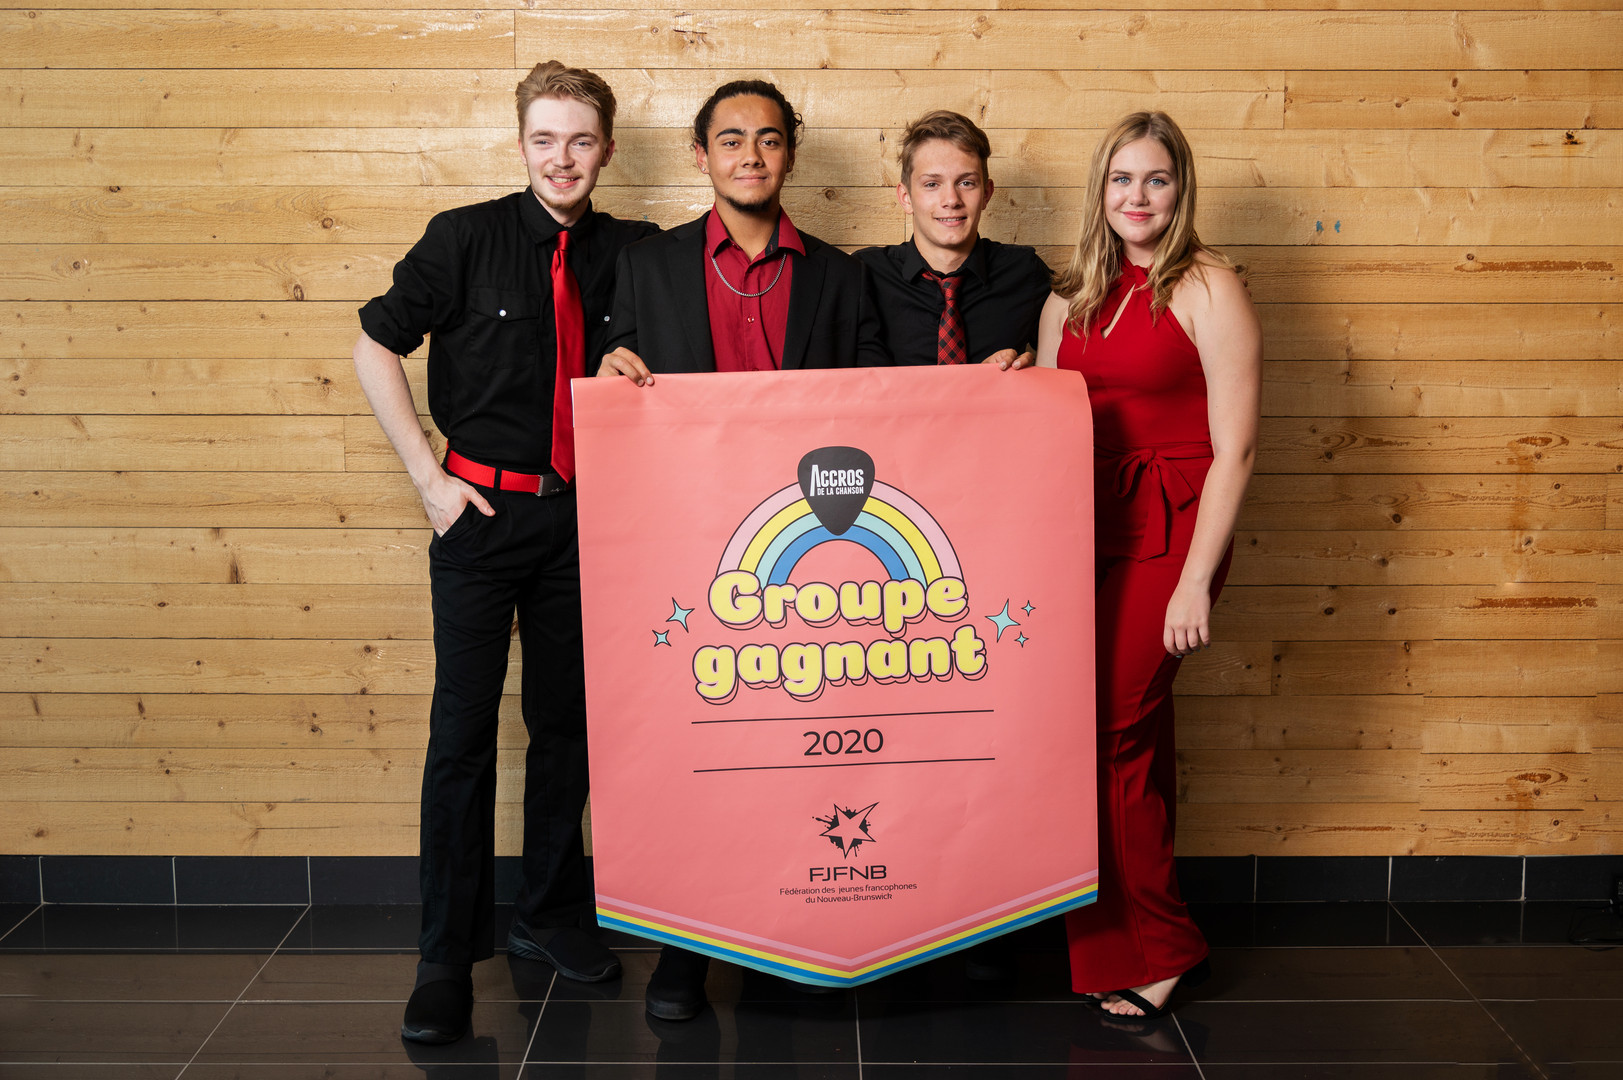 Les gagnants (groupe) In Extremis